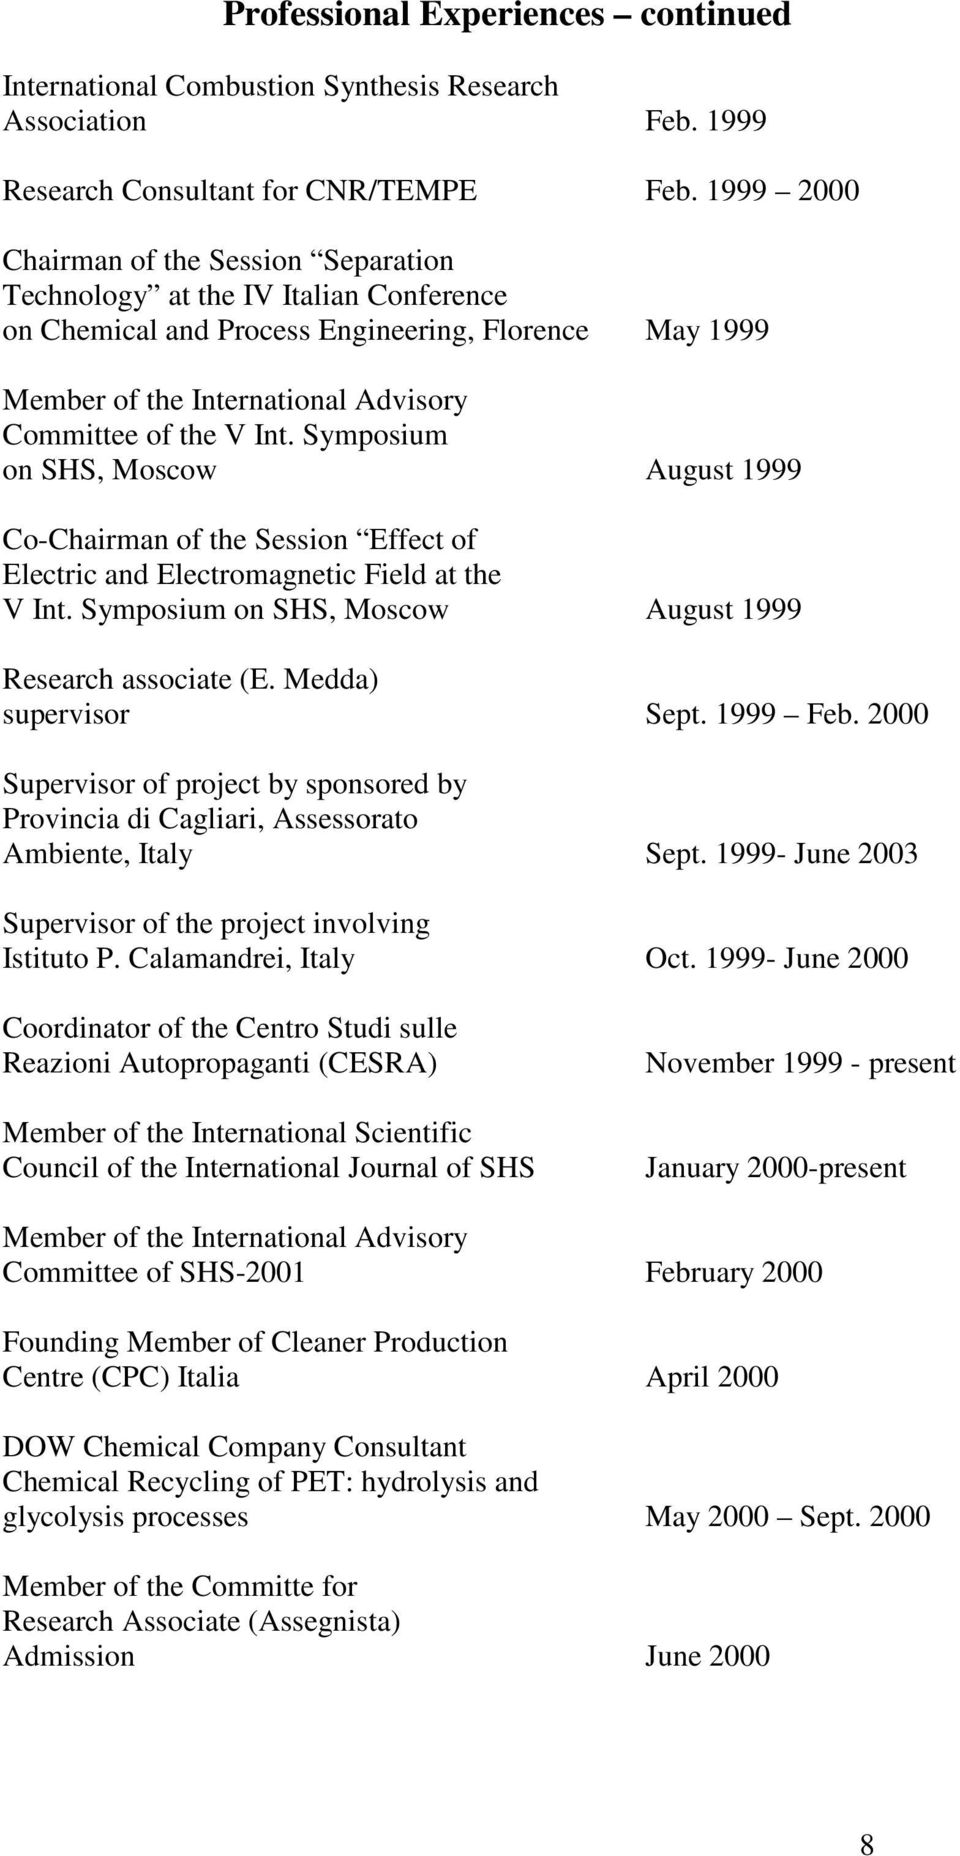 Symposium on SHS, Moscow August 1999 Co-Chairman of the Session Effect of Electric and Electromagnetic Field at the V Int. Symposium on SHS, Moscow August 1999 Research associate (E.